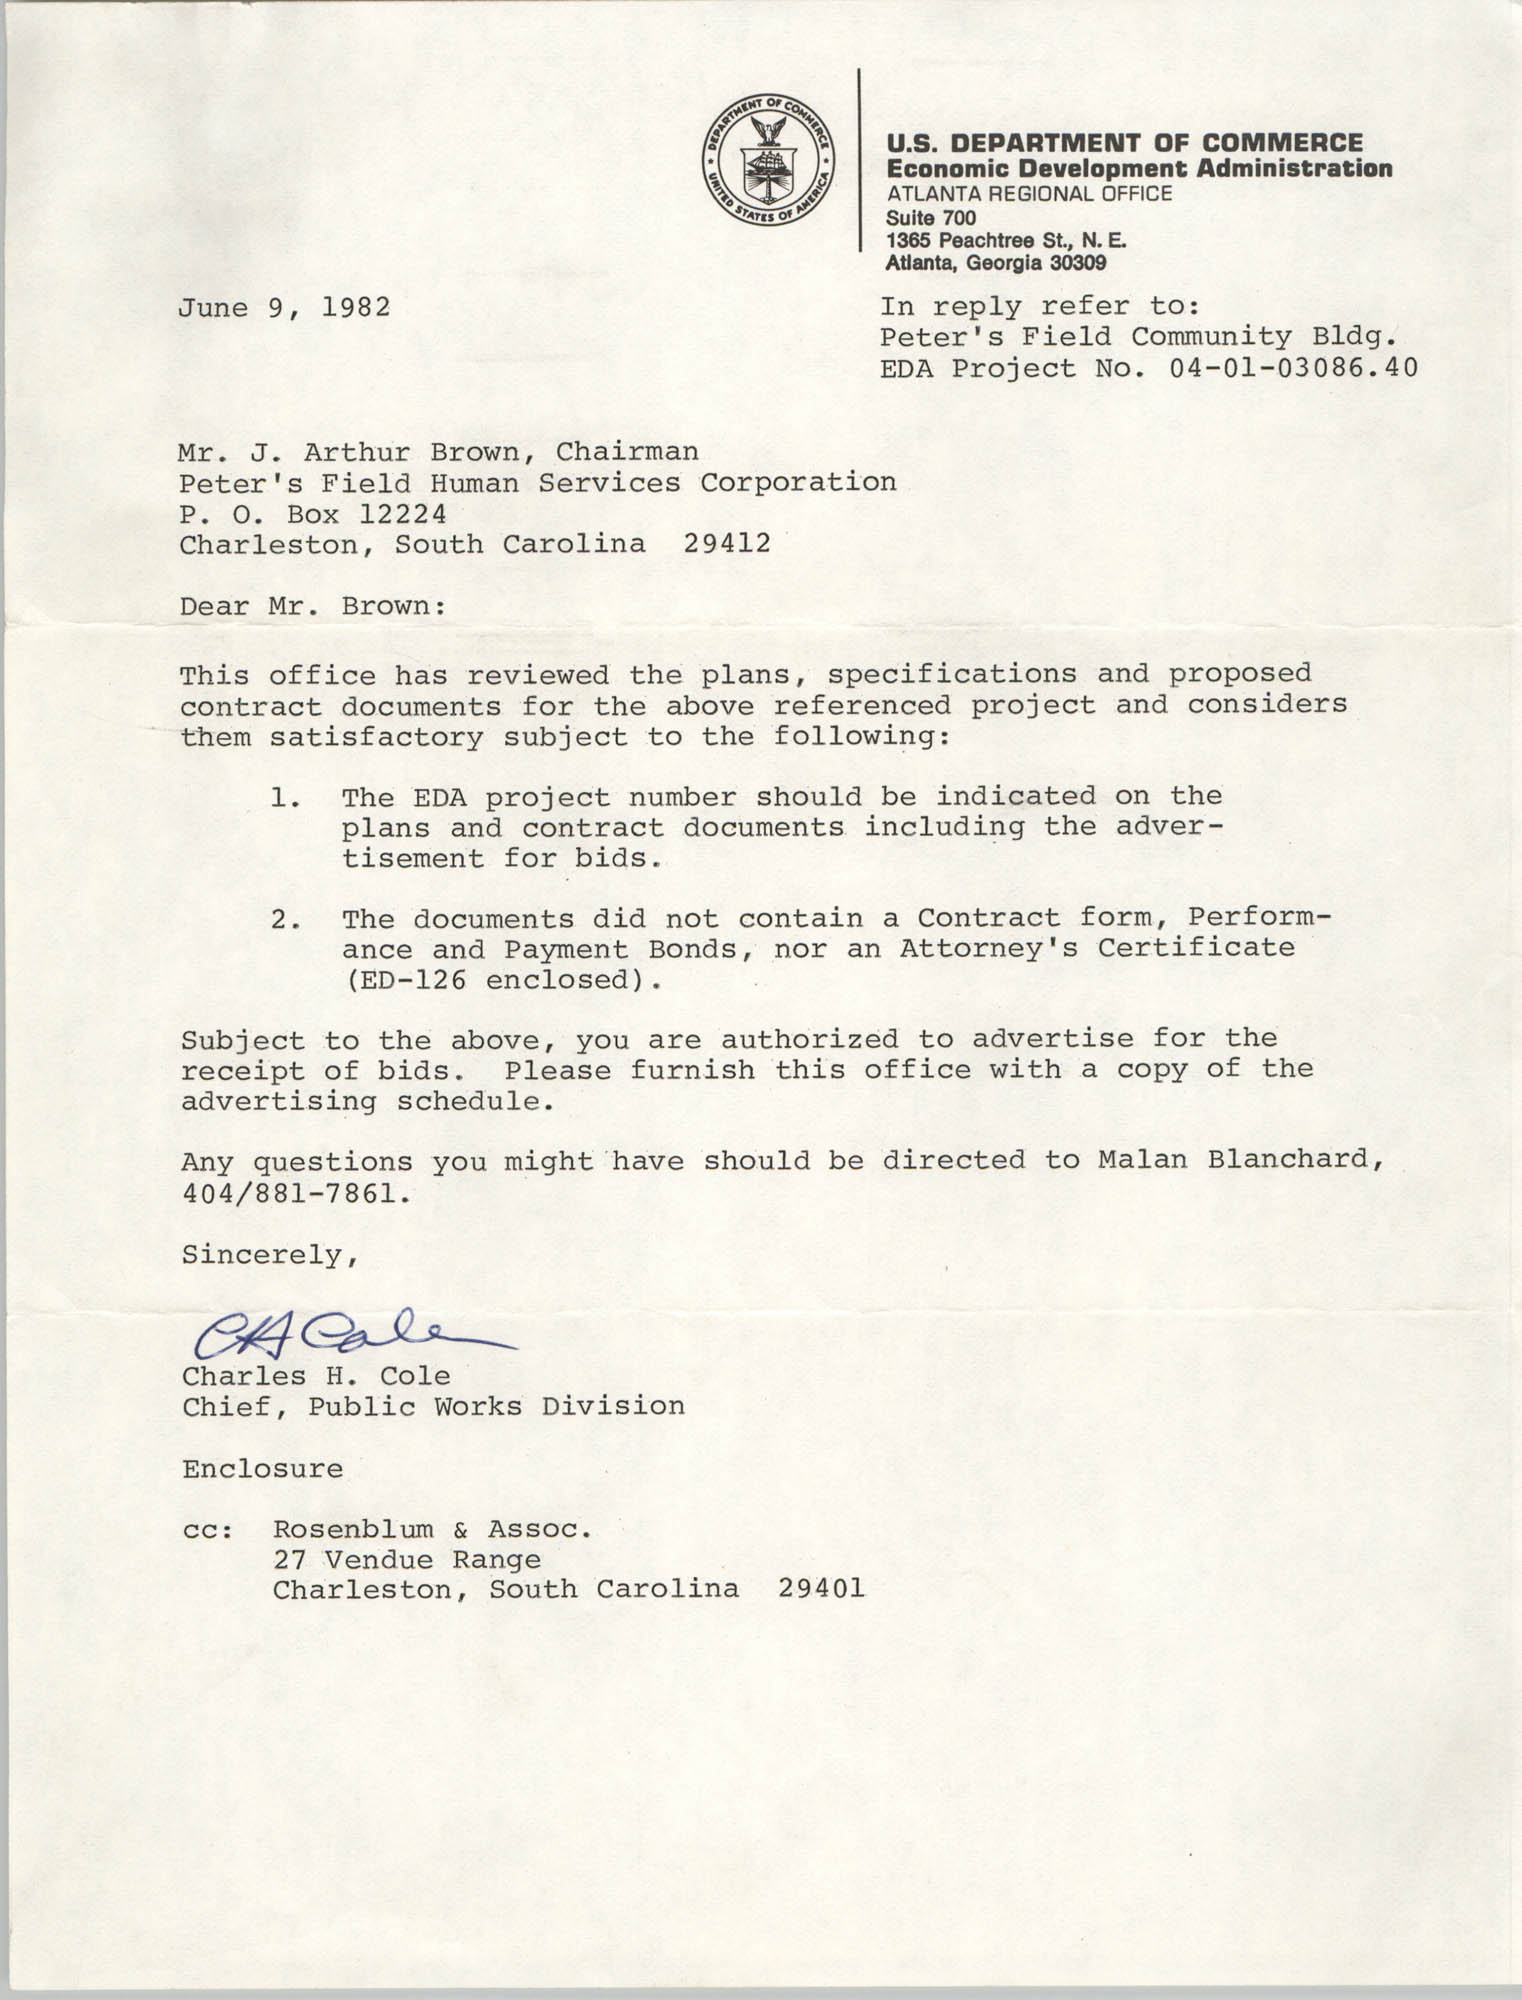 Letter from Charles H. Cole to J. Arthur Brown, June 9, 1982